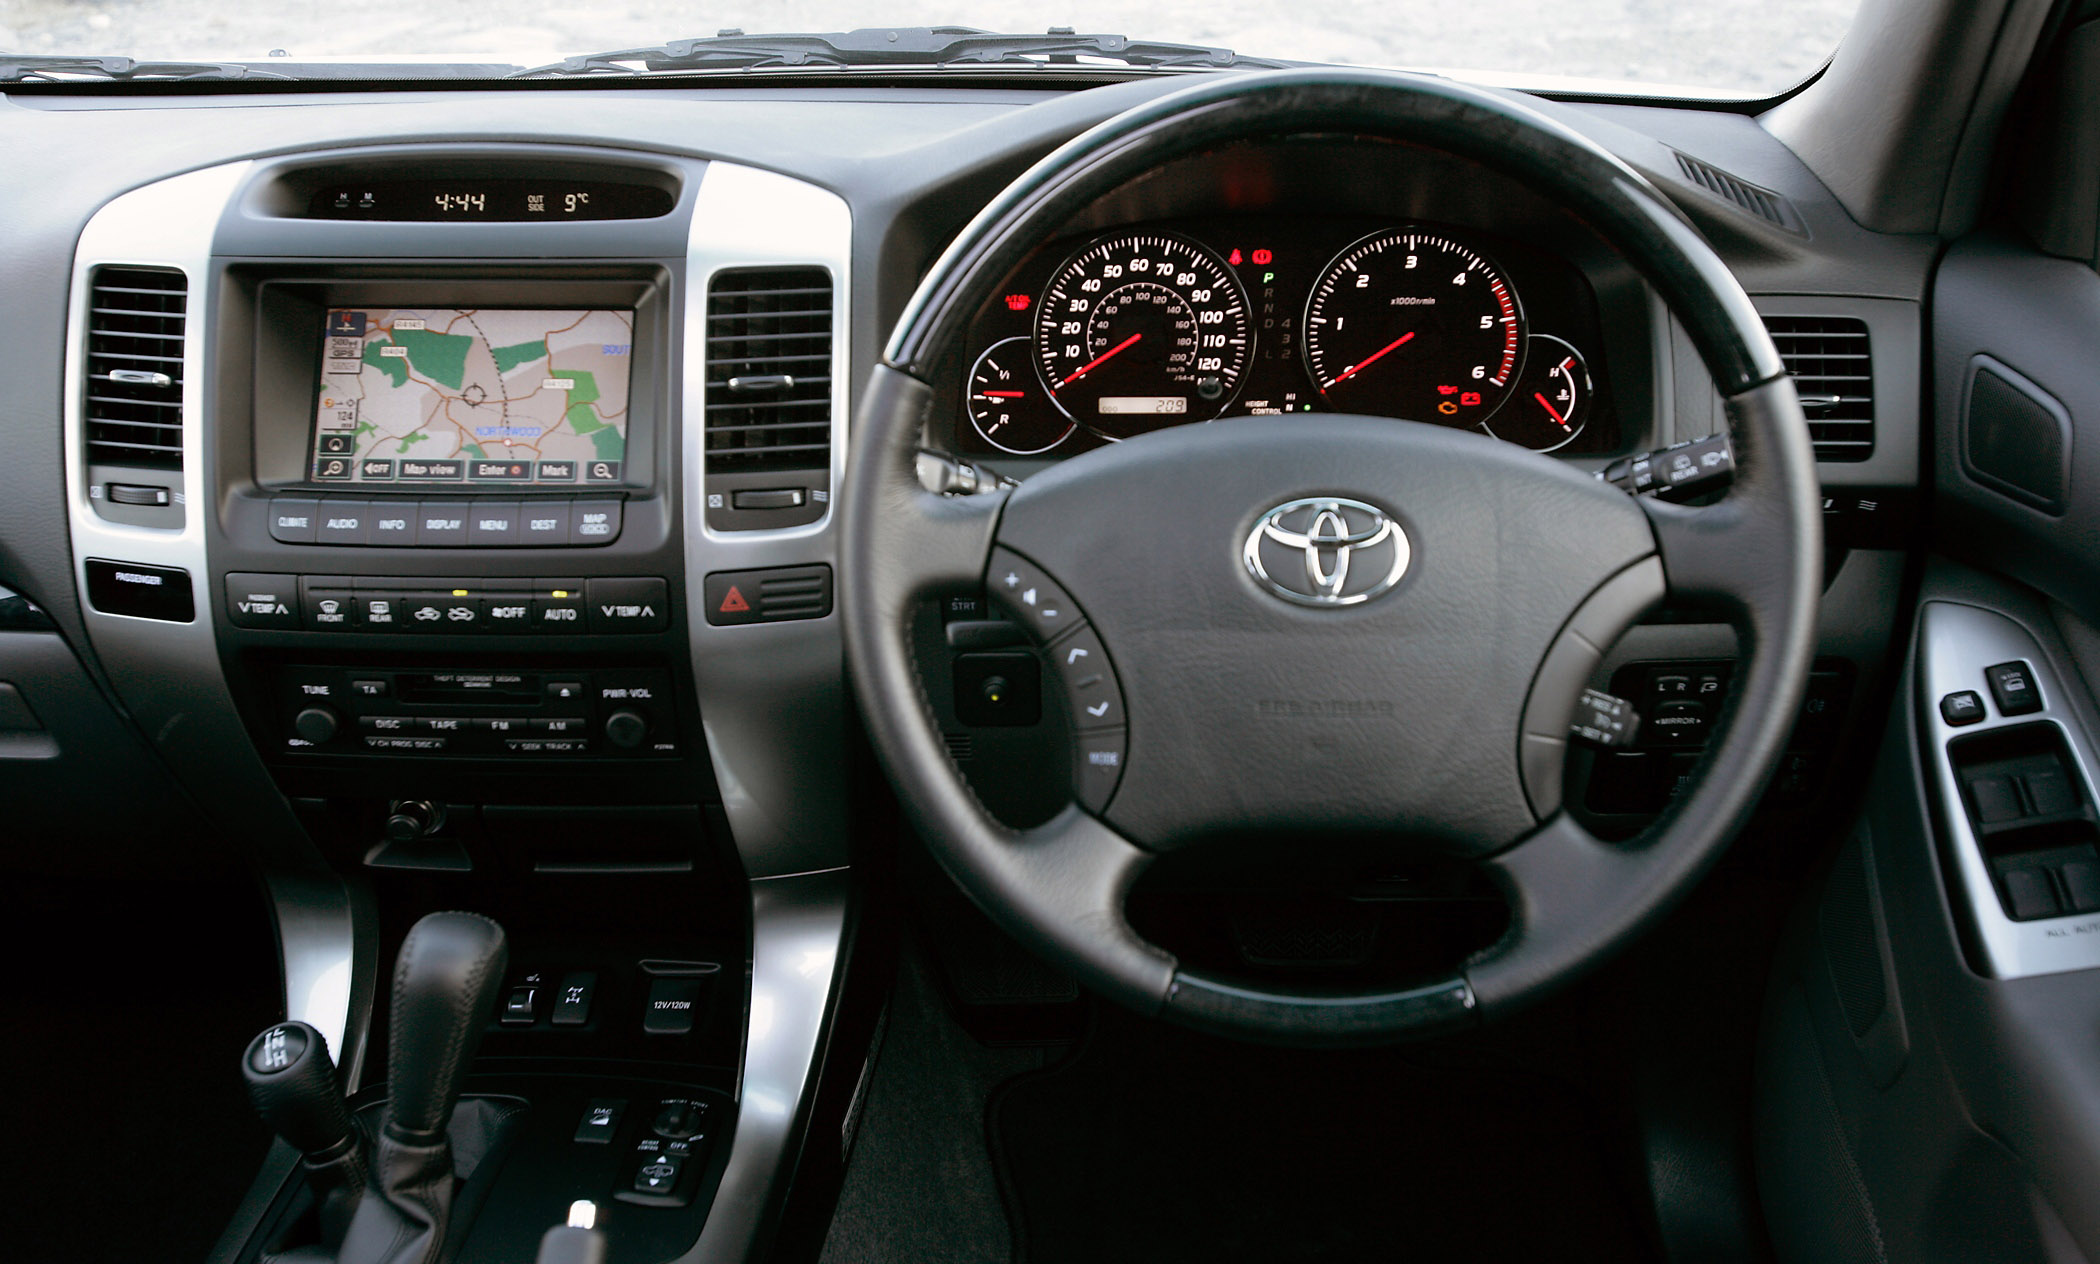 2007 Toyota Land Cruiser #17